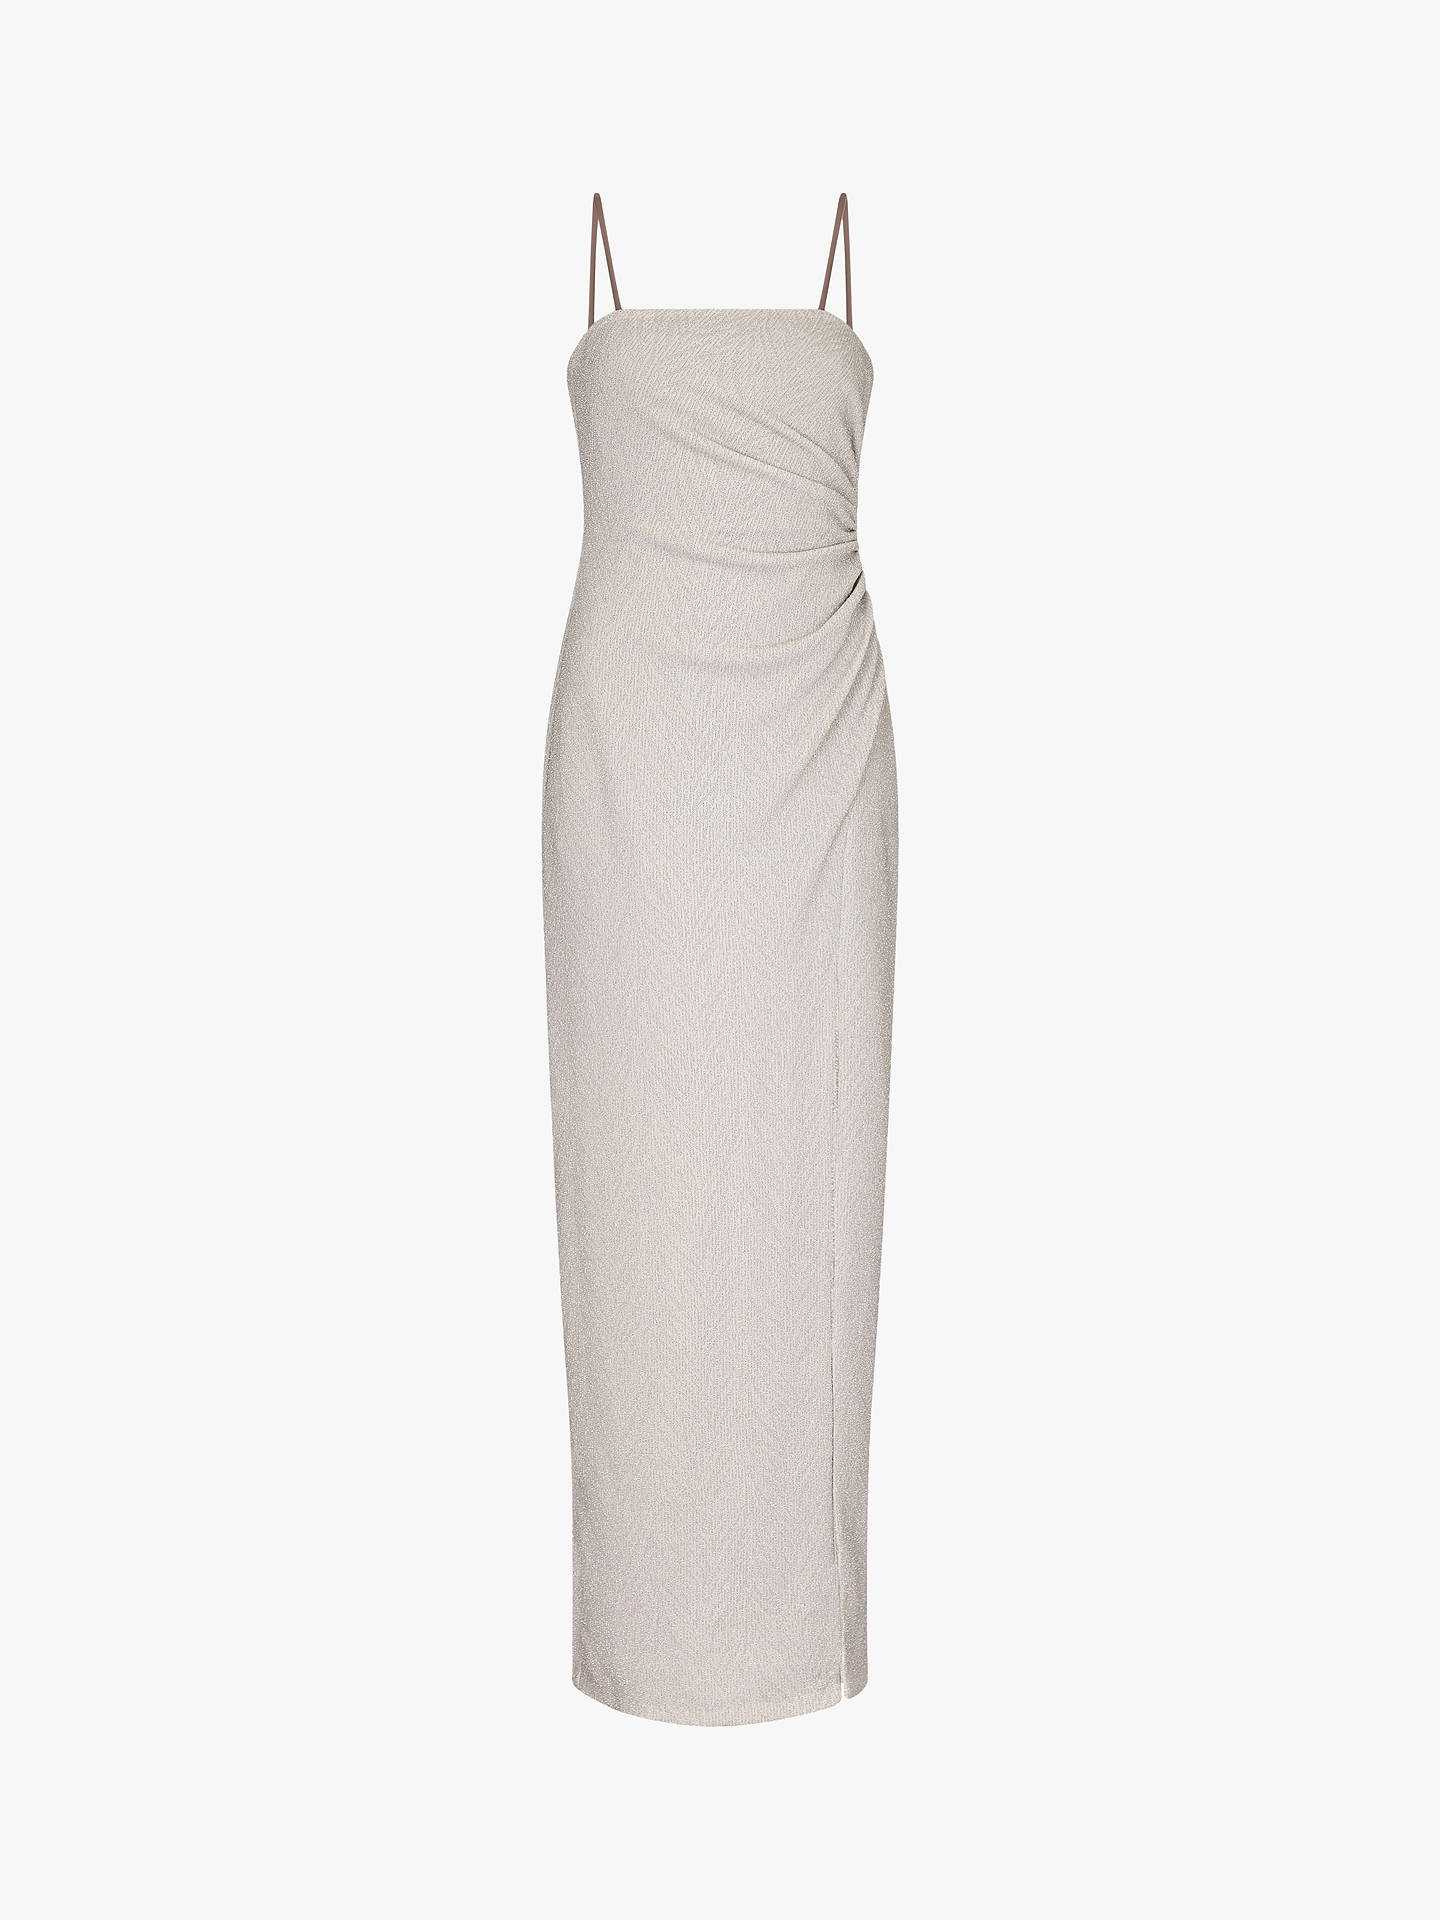 Buy Adrianna Papell Foil Jersey Dress, Silver, 8 Online at johnlewis.com